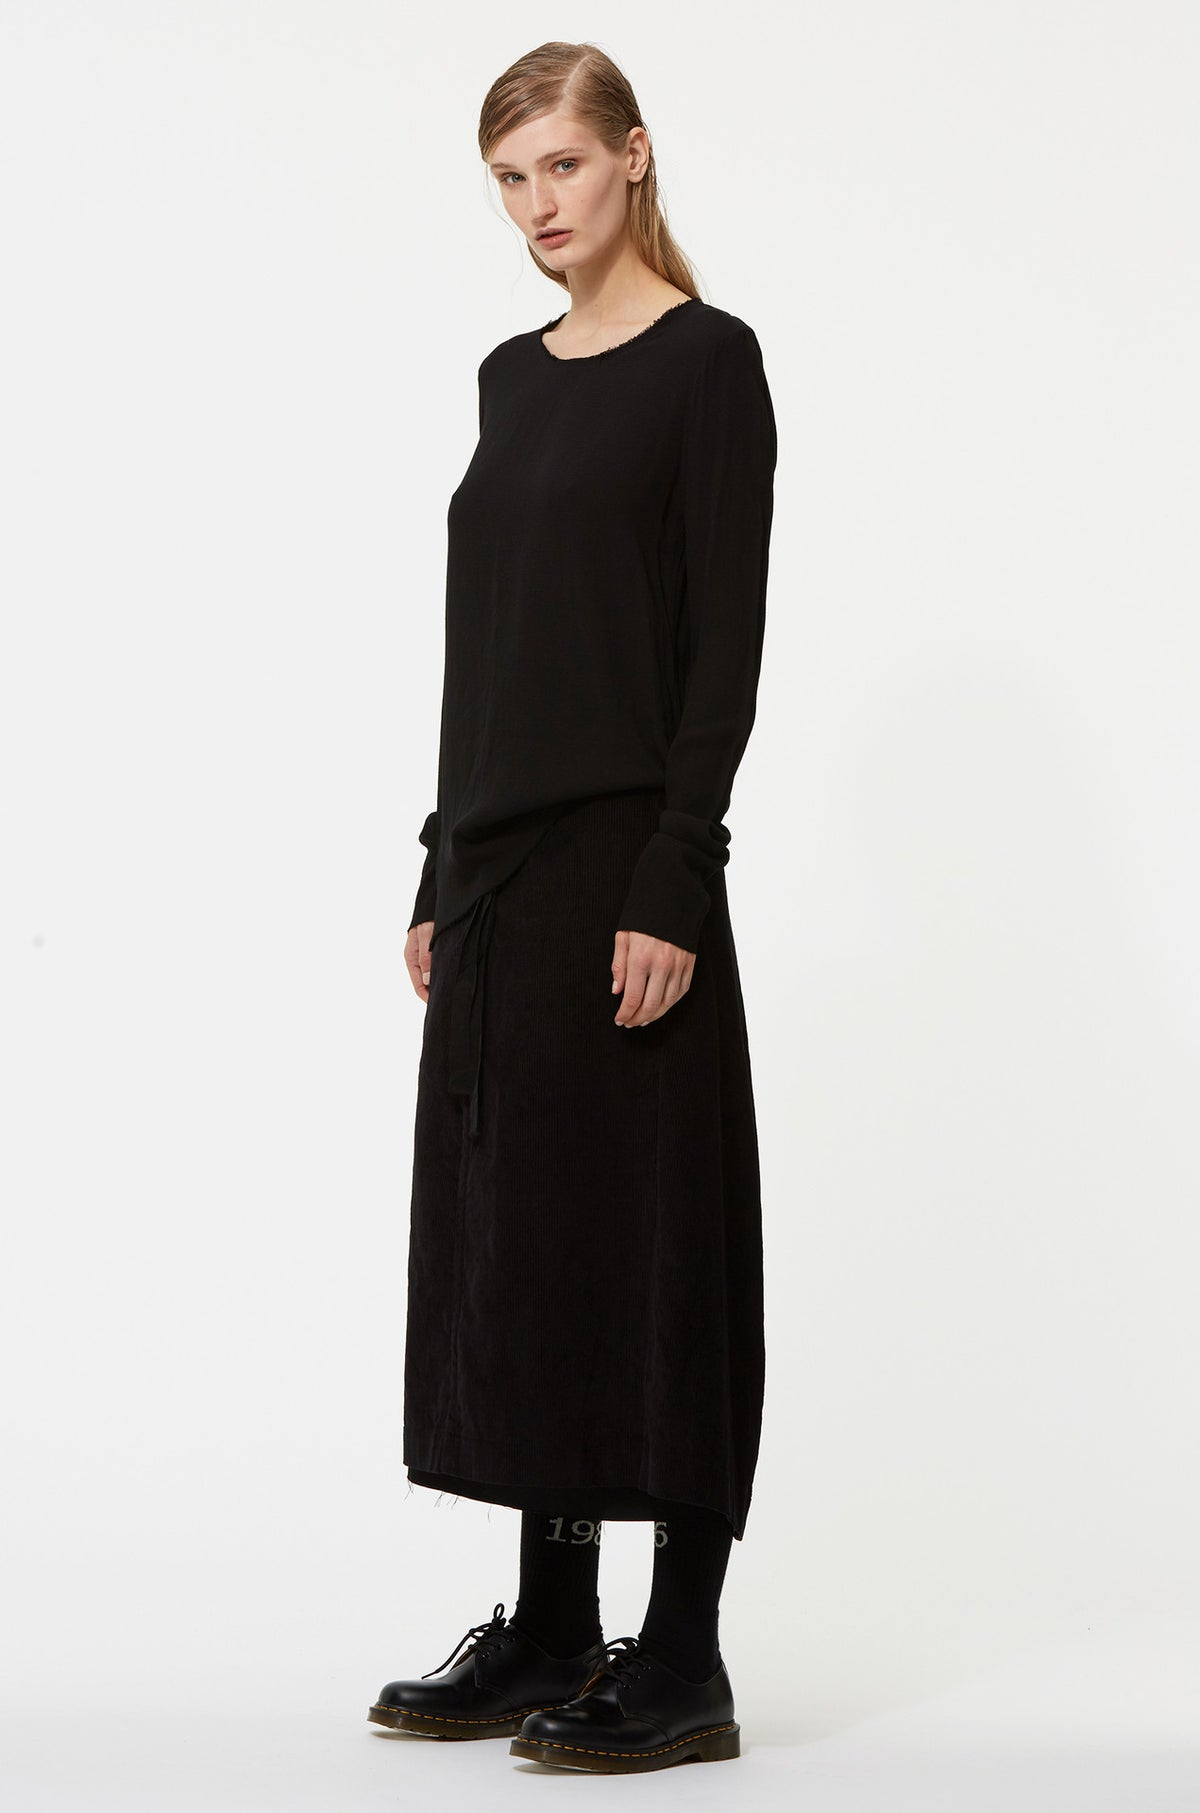 INDEPENDENT TOP - BLACK